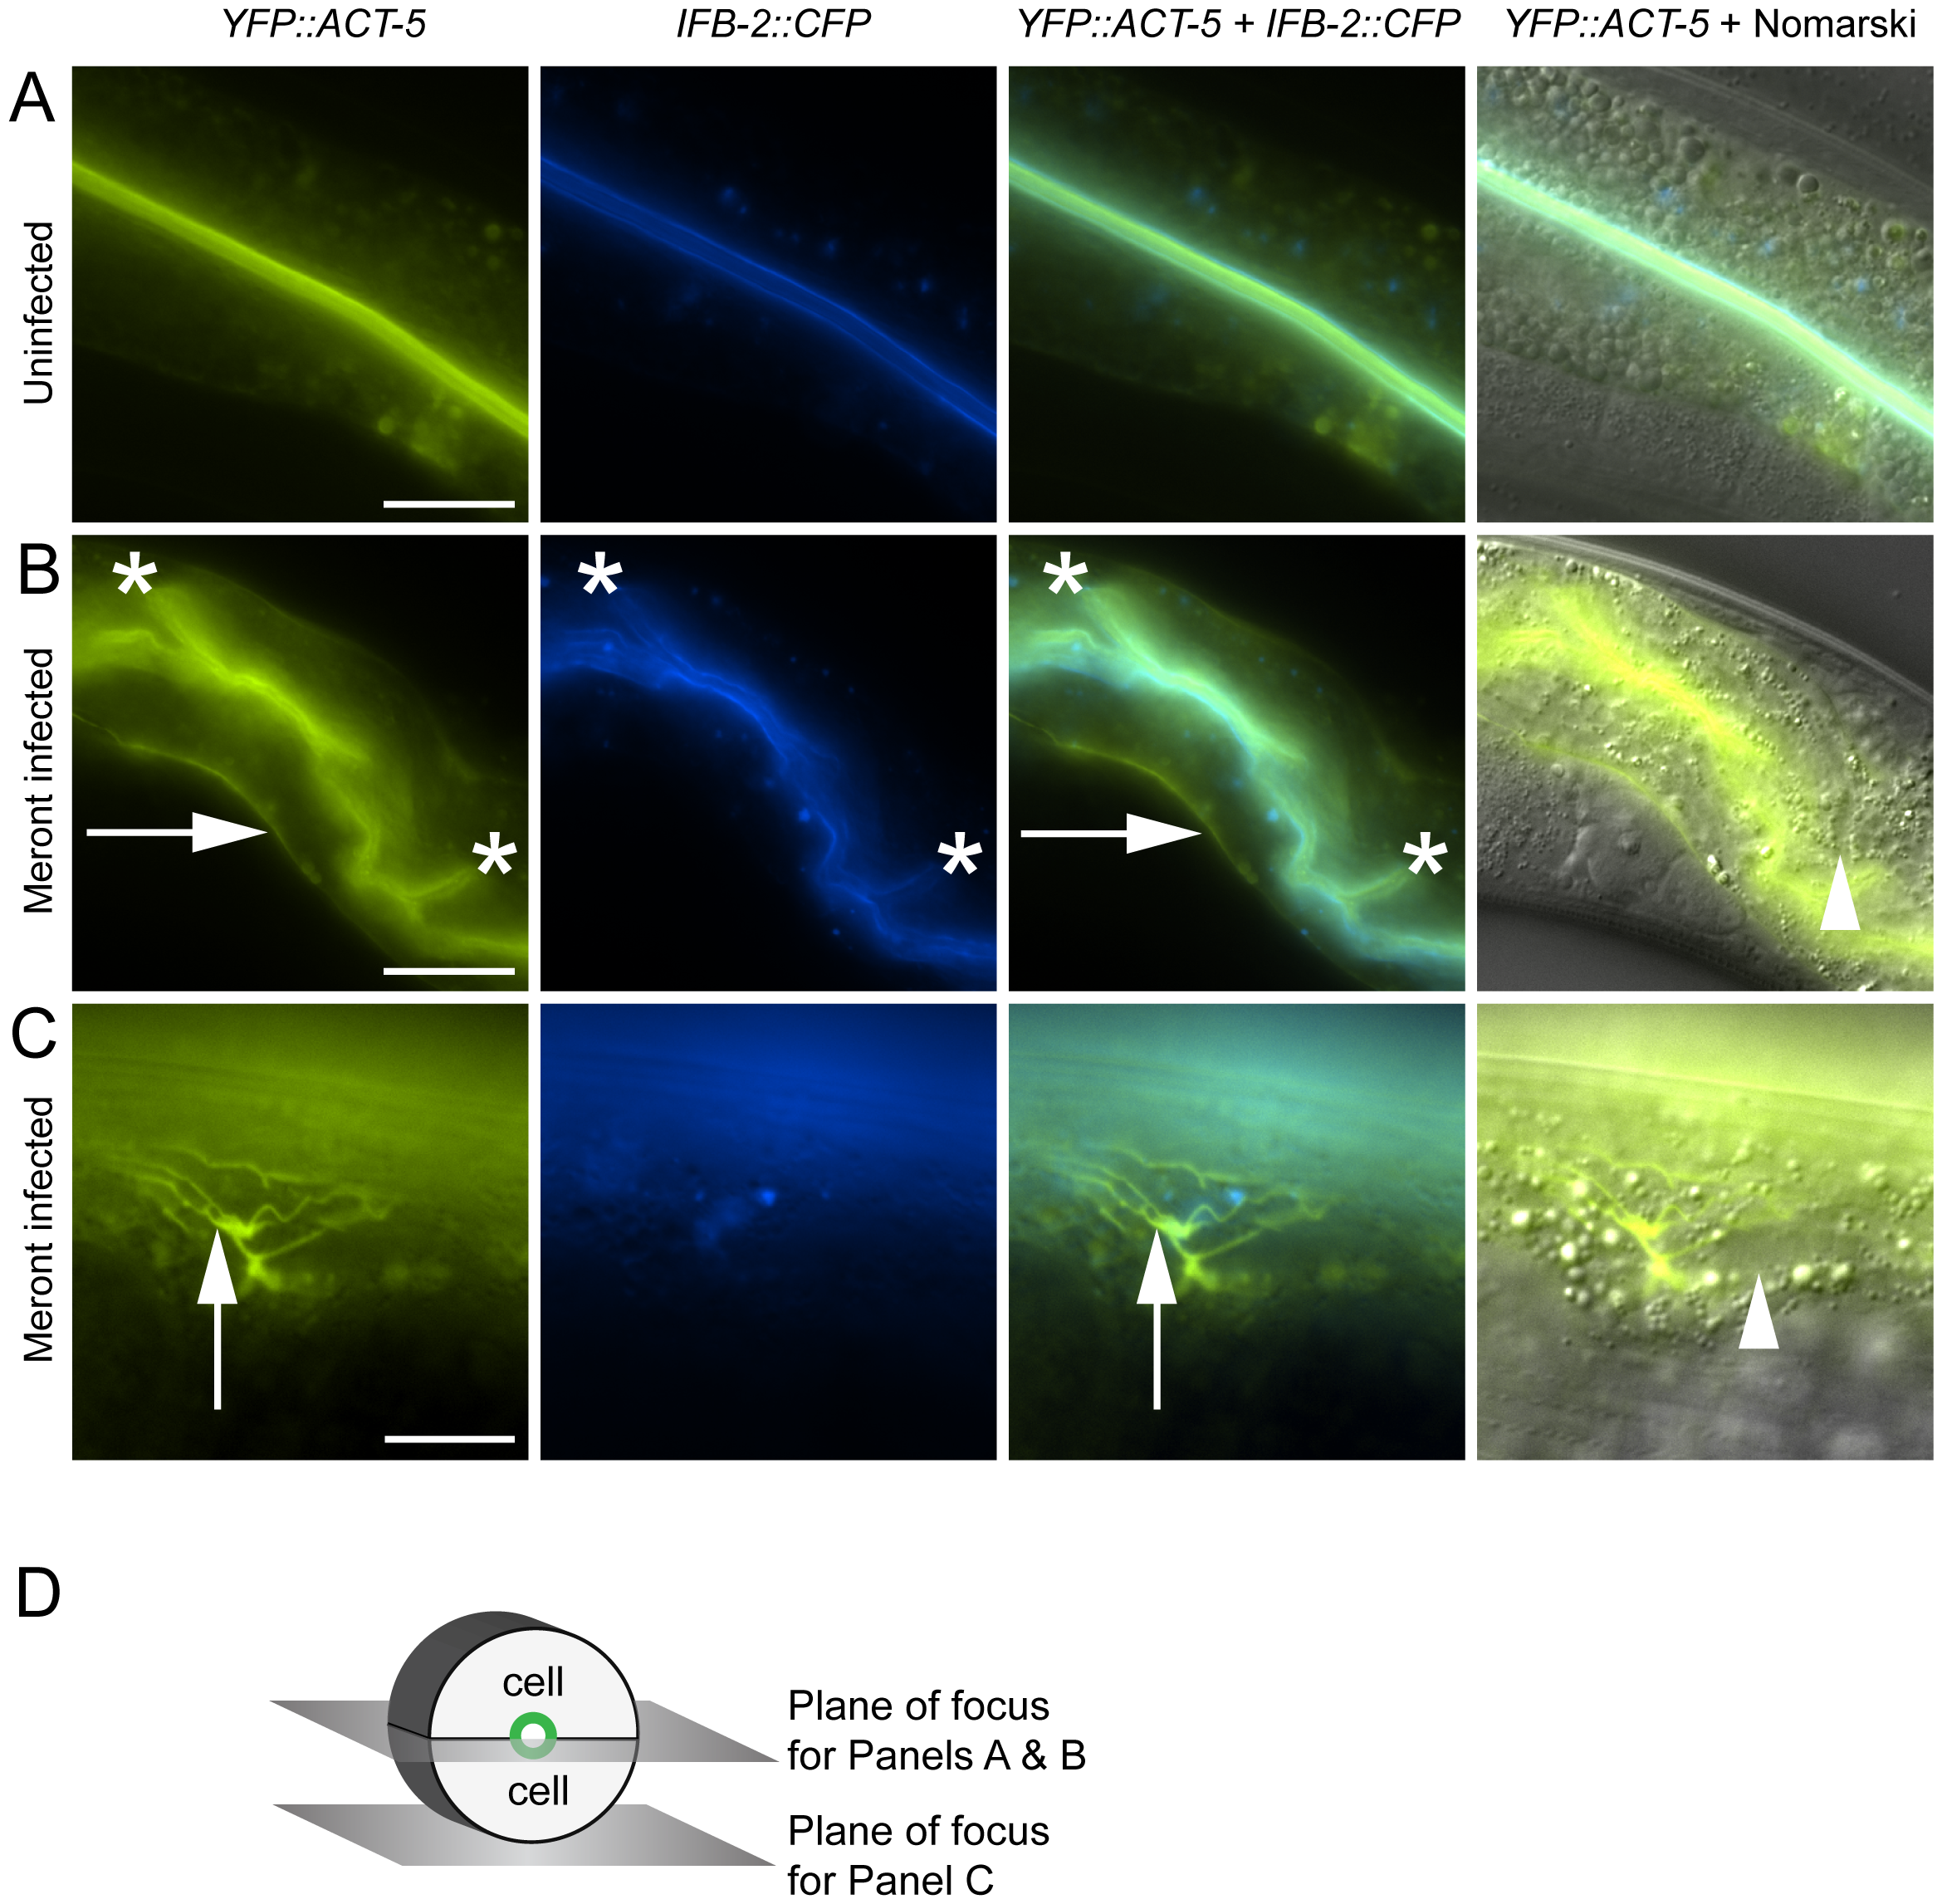 Host intestinal actin relocalizes basolaterally during <i>N. parisii</i> meront development.